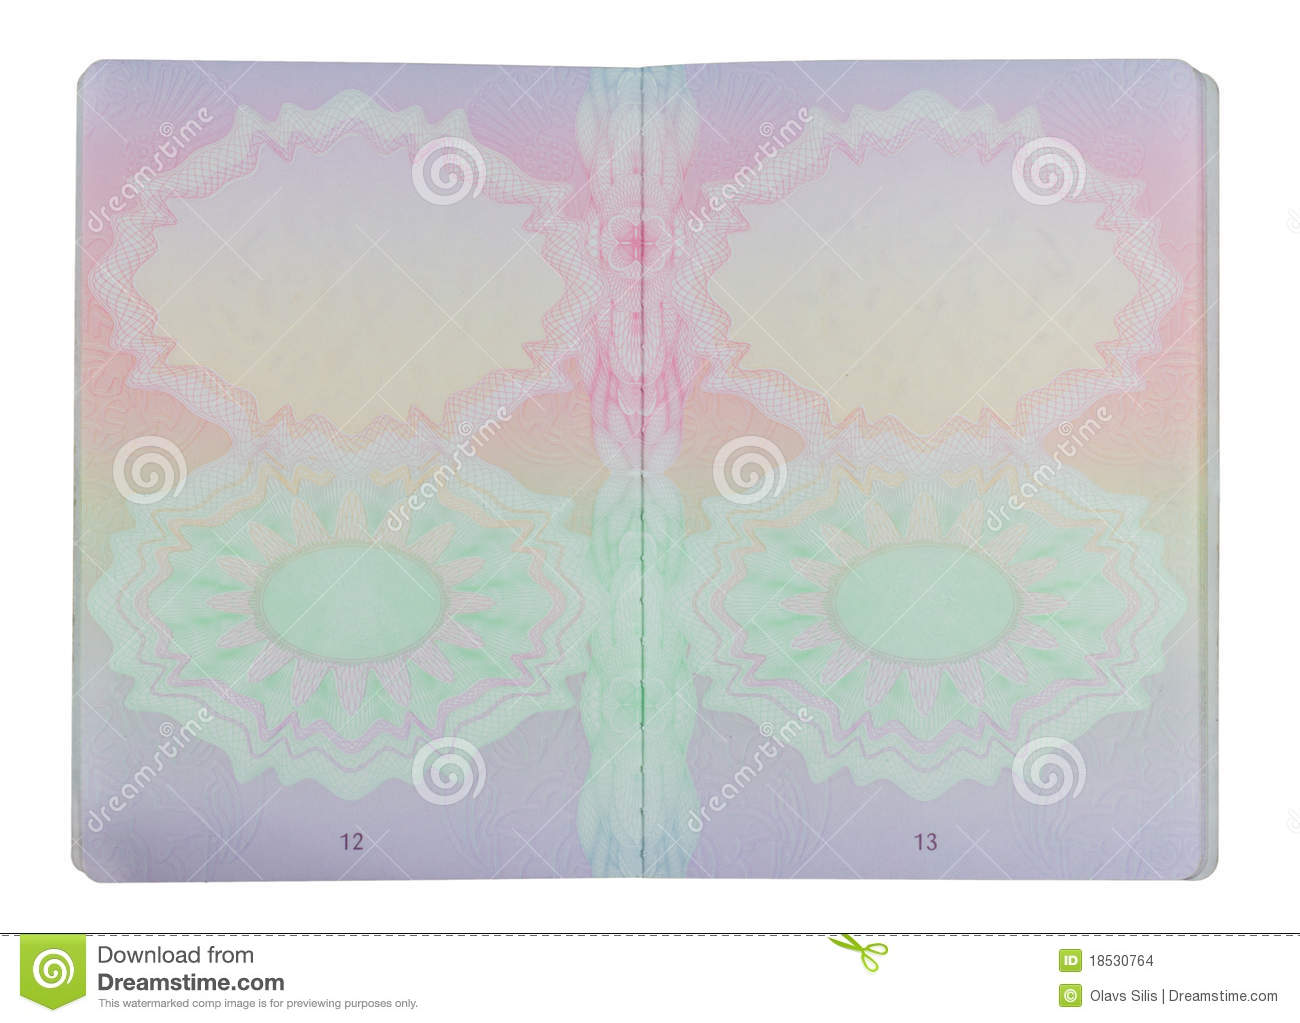 Passport Pages Stock Images - Image: 18530764